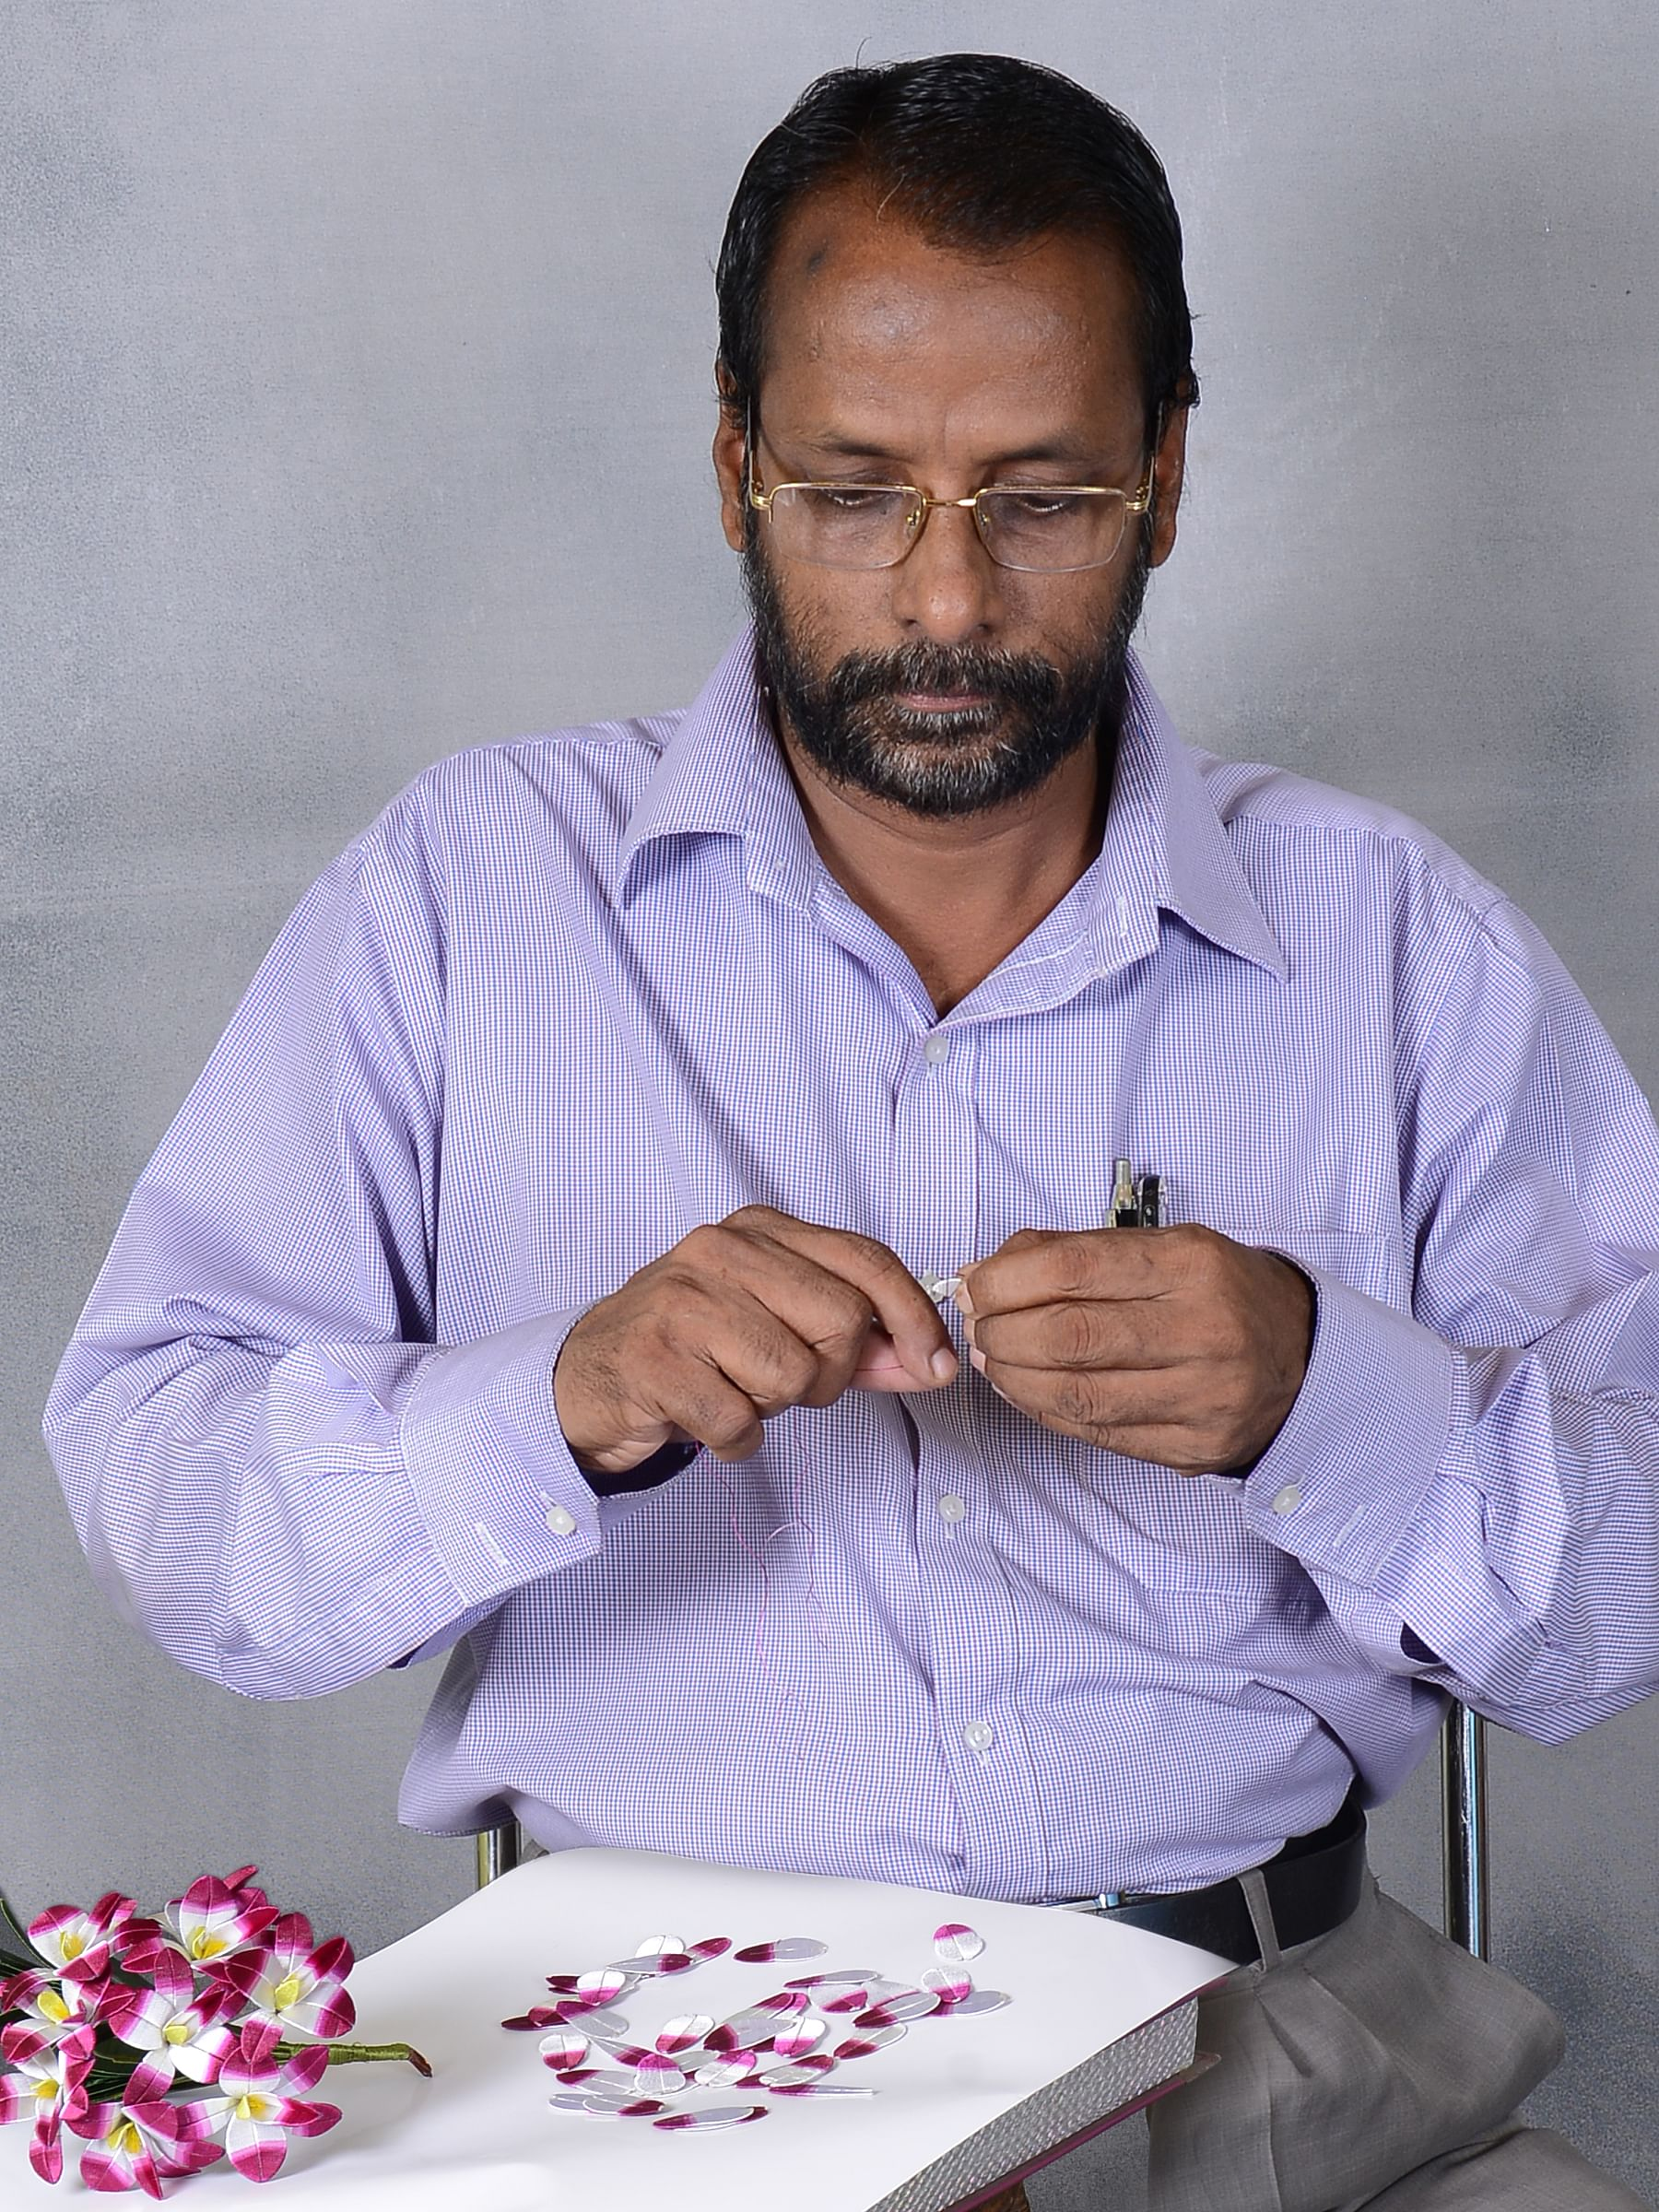 Antony Joseph making a bouquet of flowers. Photo Credit: Thread Garden